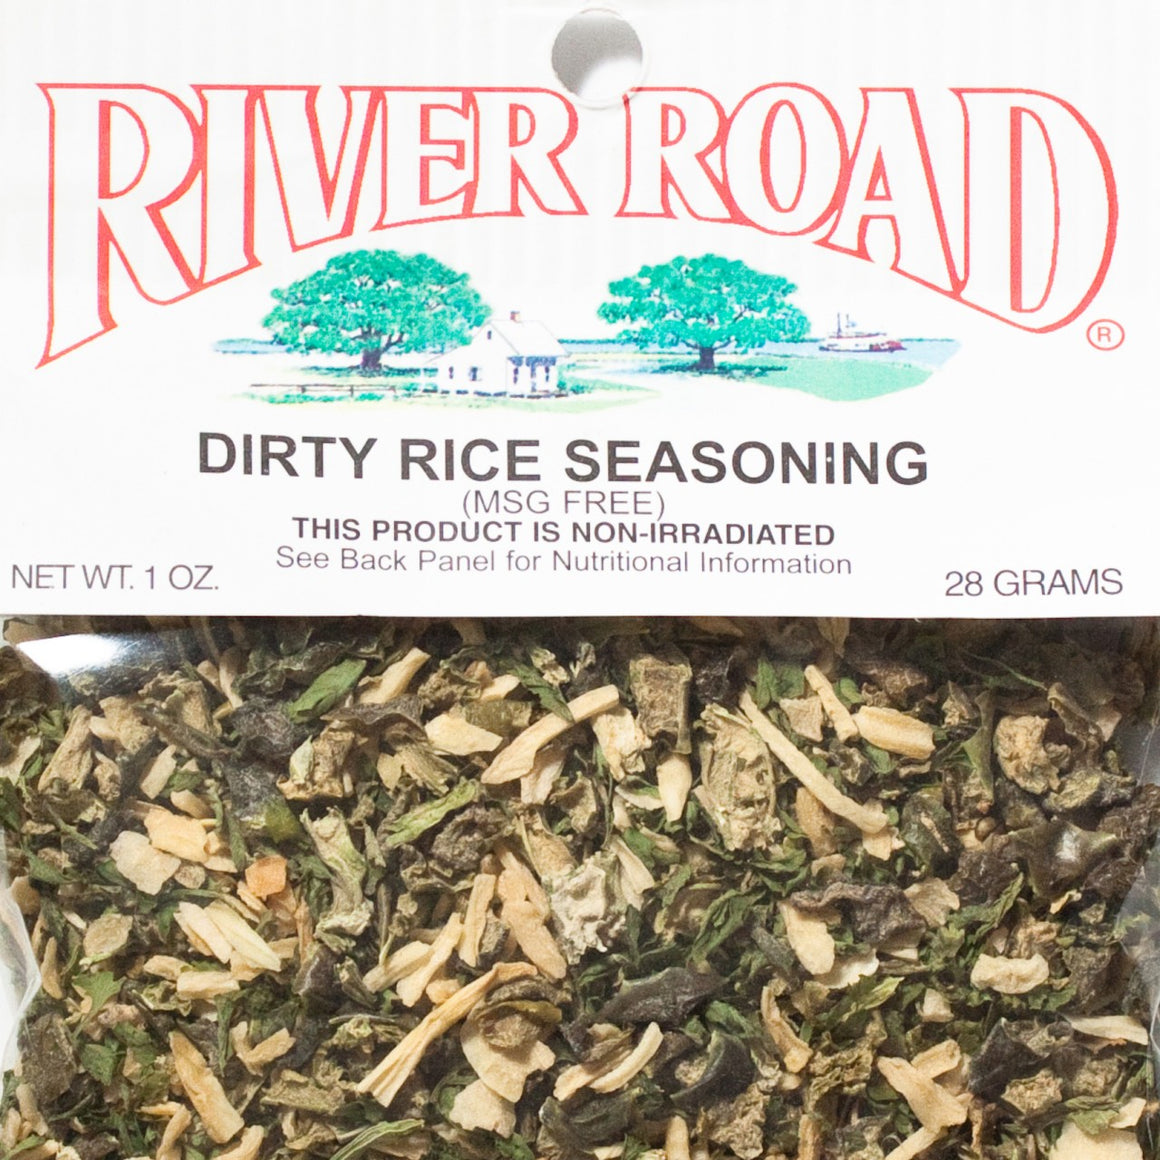 River Roads Dirty Rice Seasoning (1 oz)